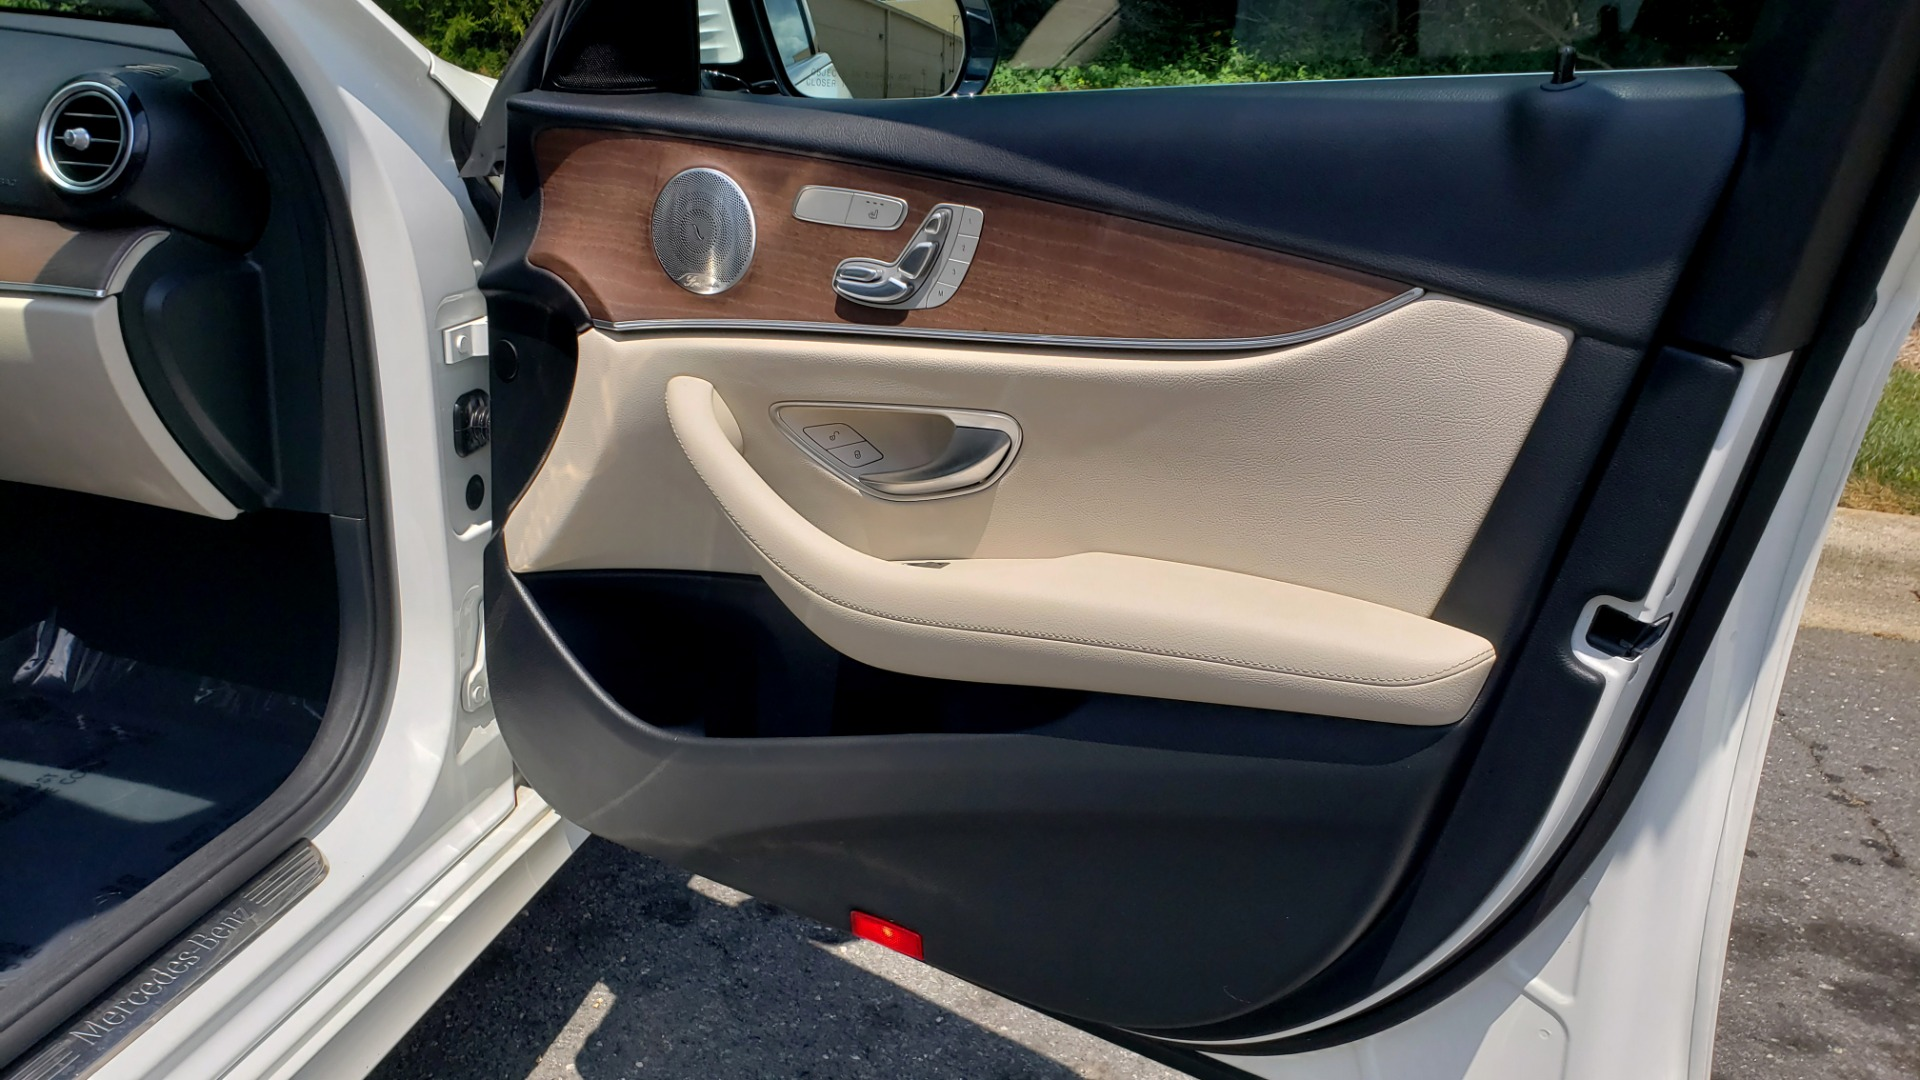 Used 2017 Mercedes-Benz E-CLASS E 300 PREMIUM / SPORT / NAV / SUNROOF / HTD STS / BSM / REARVIEW for sale $27,995 at Formula Imports in Charlotte NC 28227 61